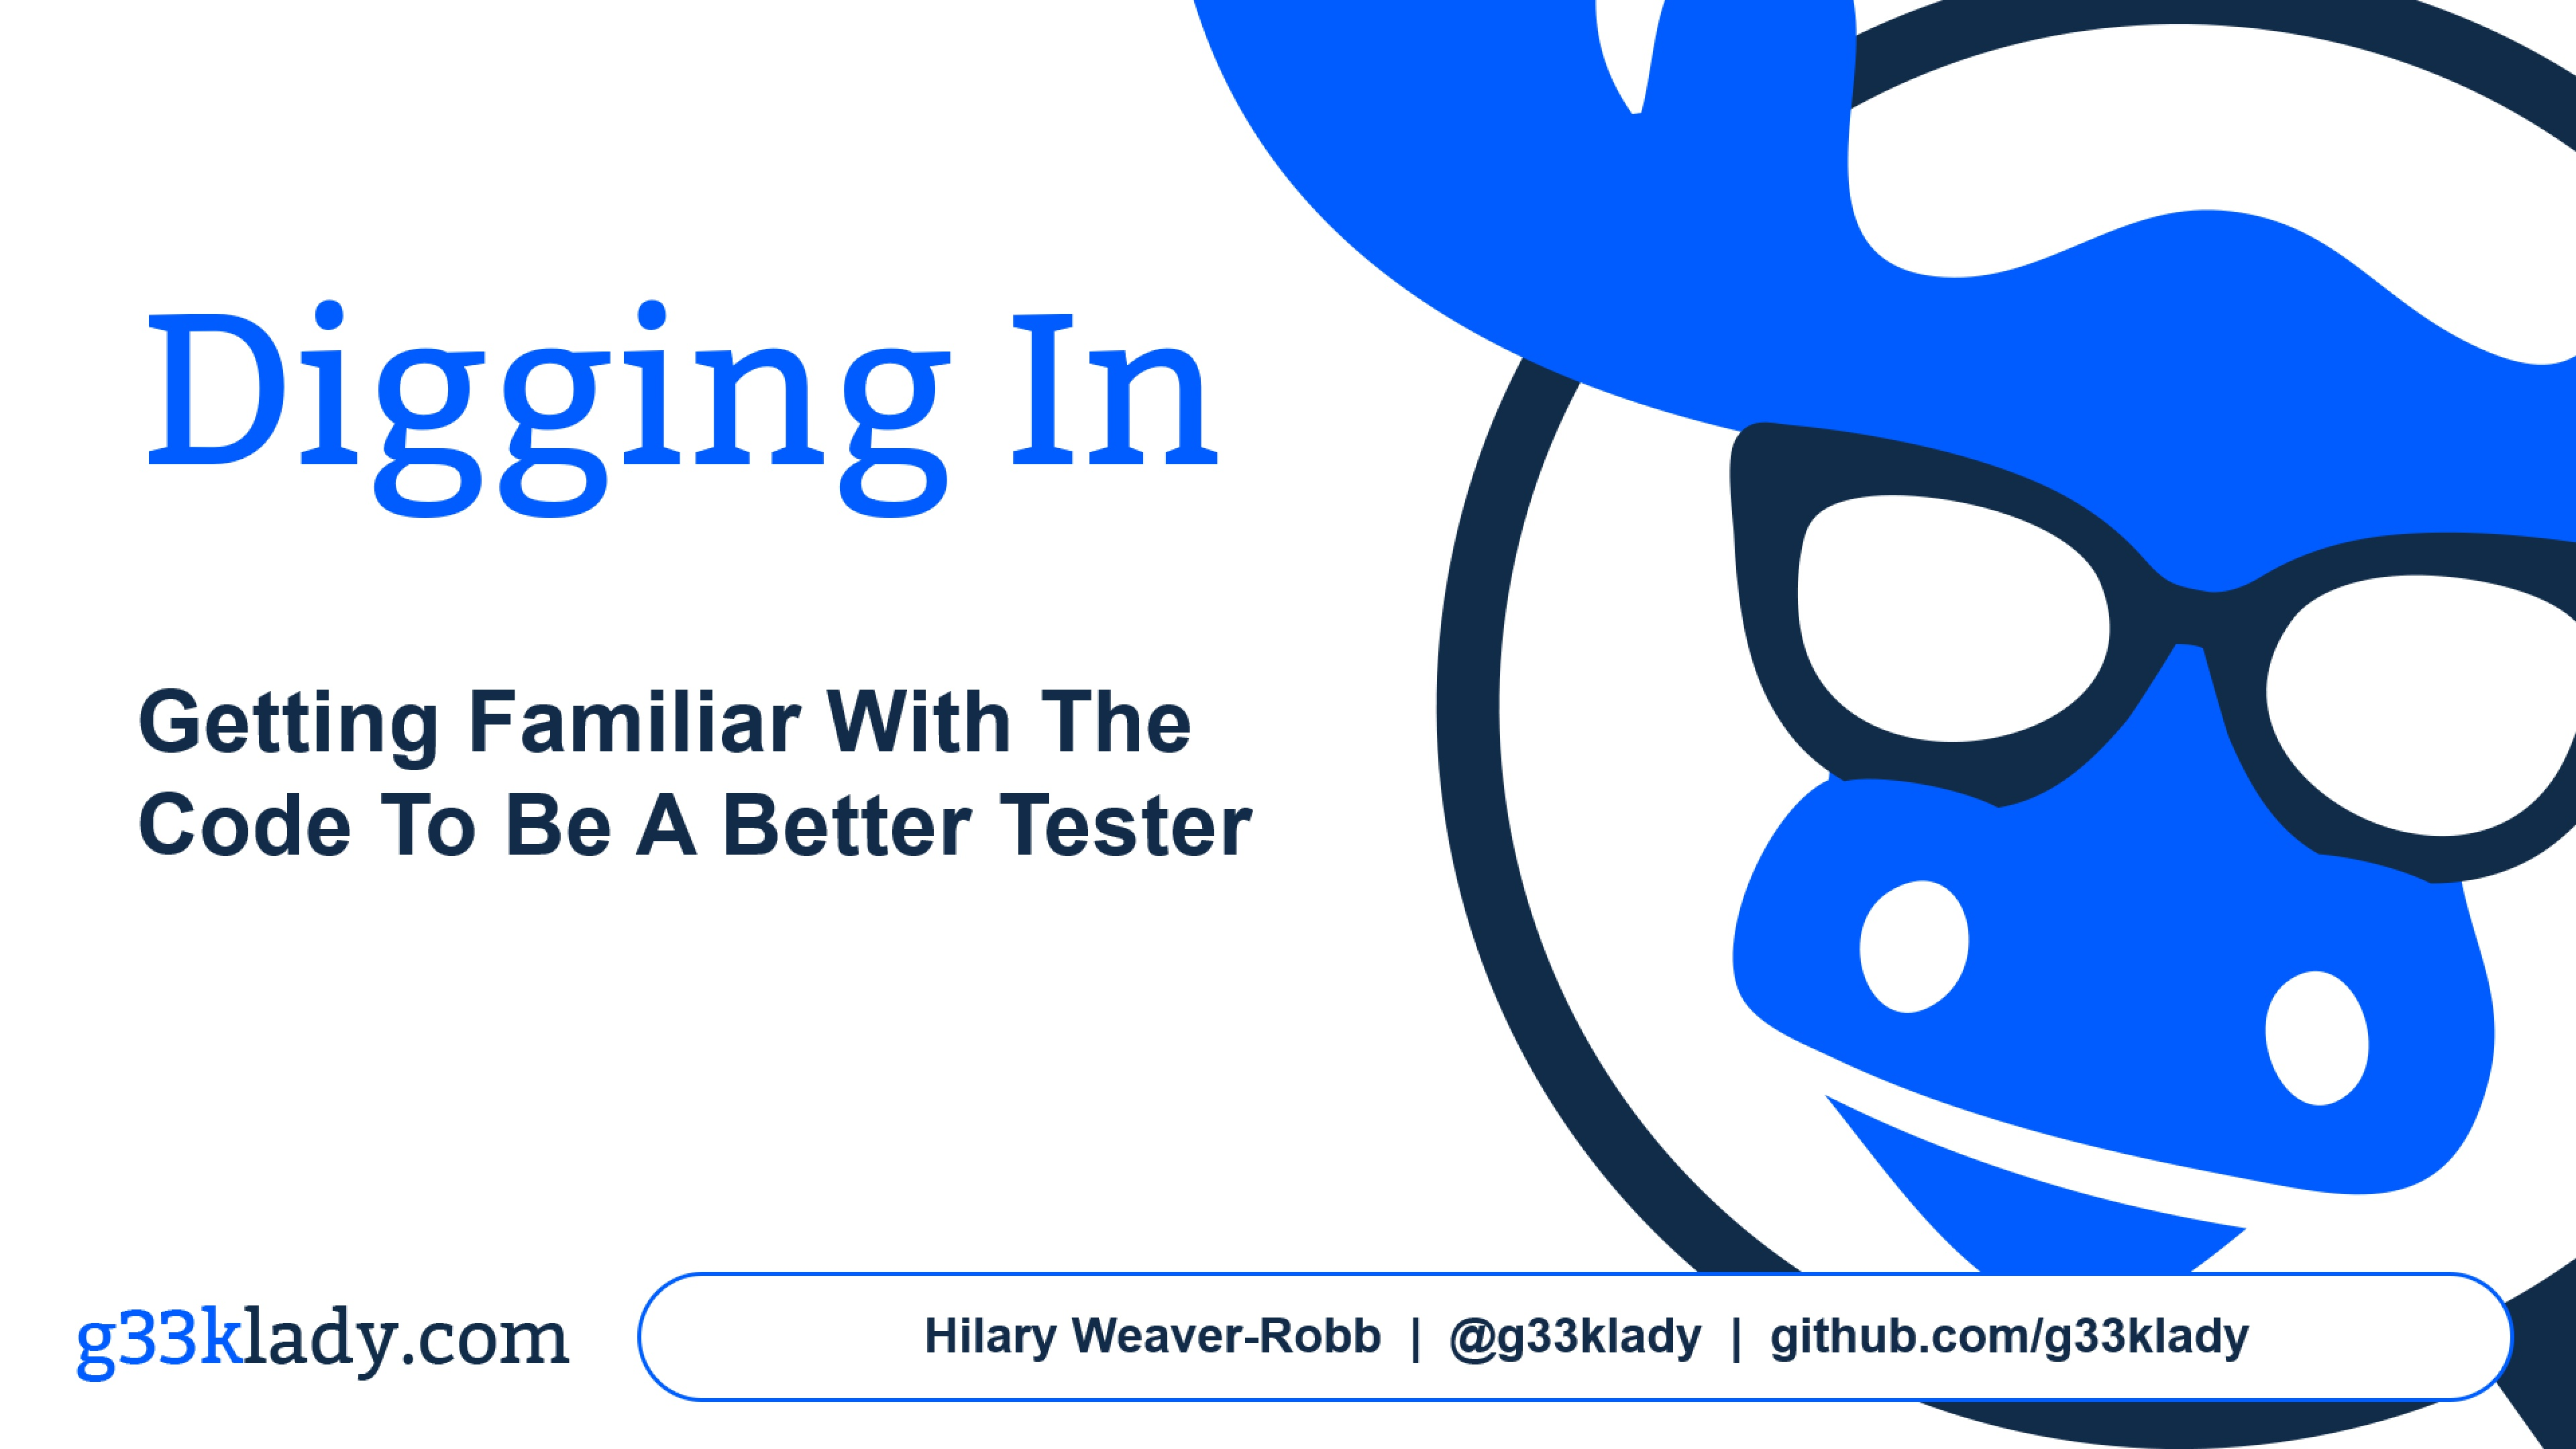 Digging In: Getting Familiar with Code to be a Better Tester